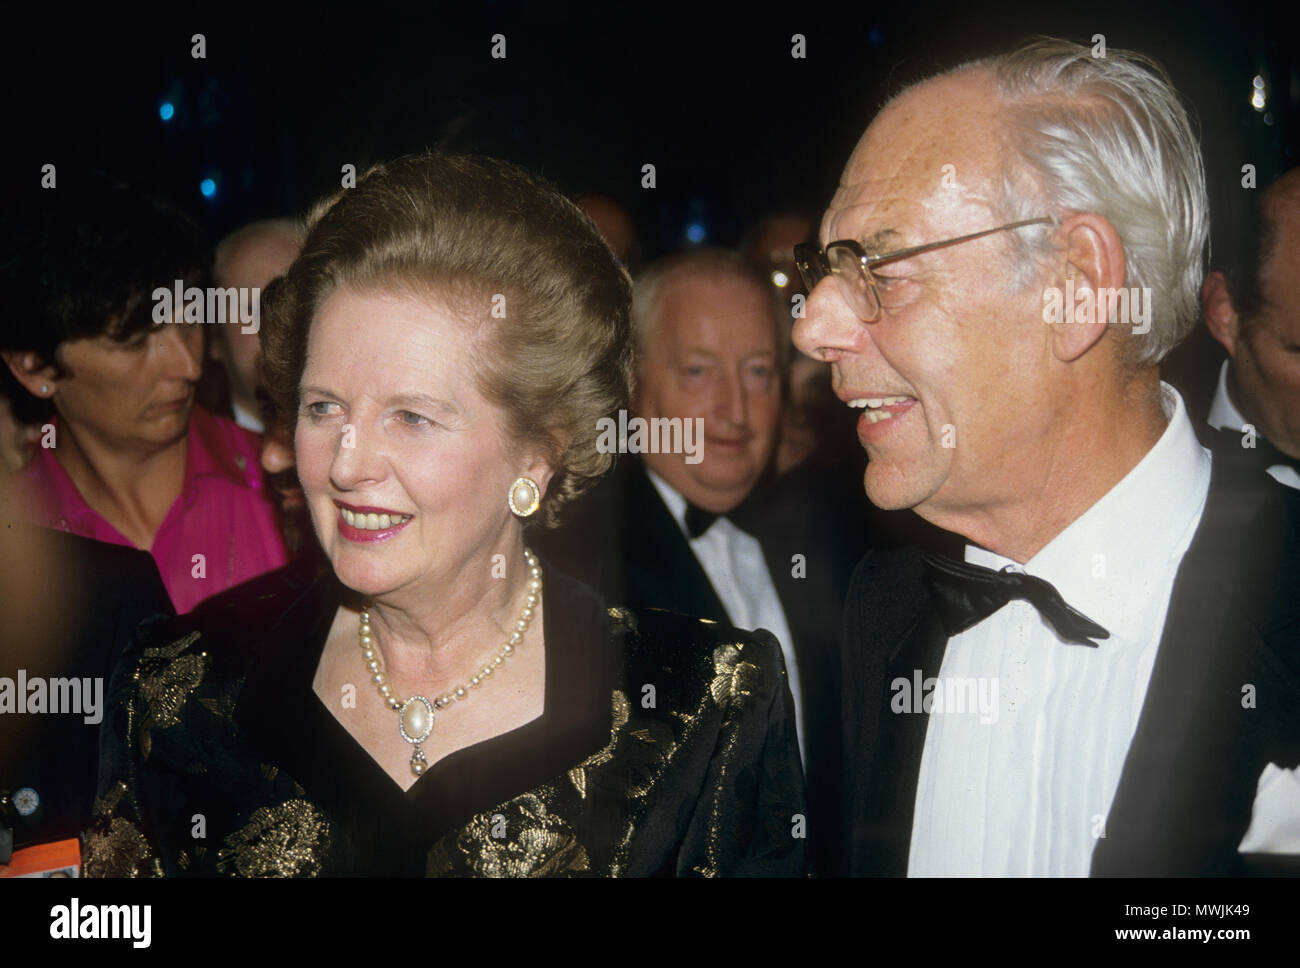 MARGARET THATCHER (1925-2013) Conservative Party leader with husband Denis about 1990 - Stock Image